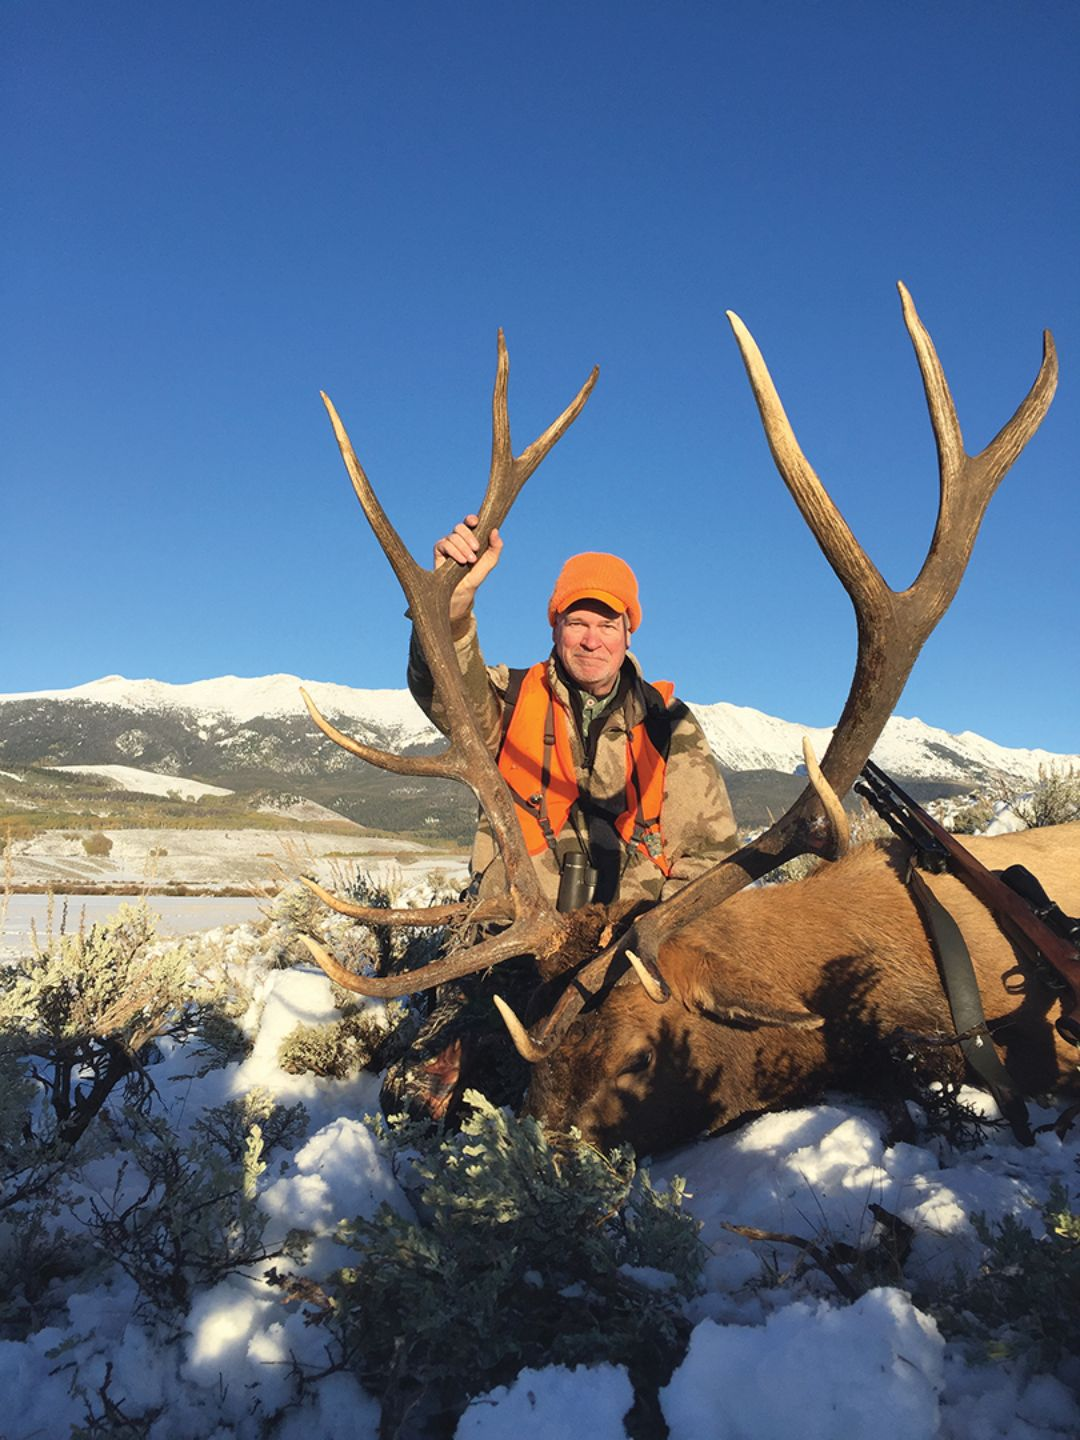 John's hunt took place in North Park, a beautiful region of Colorado.